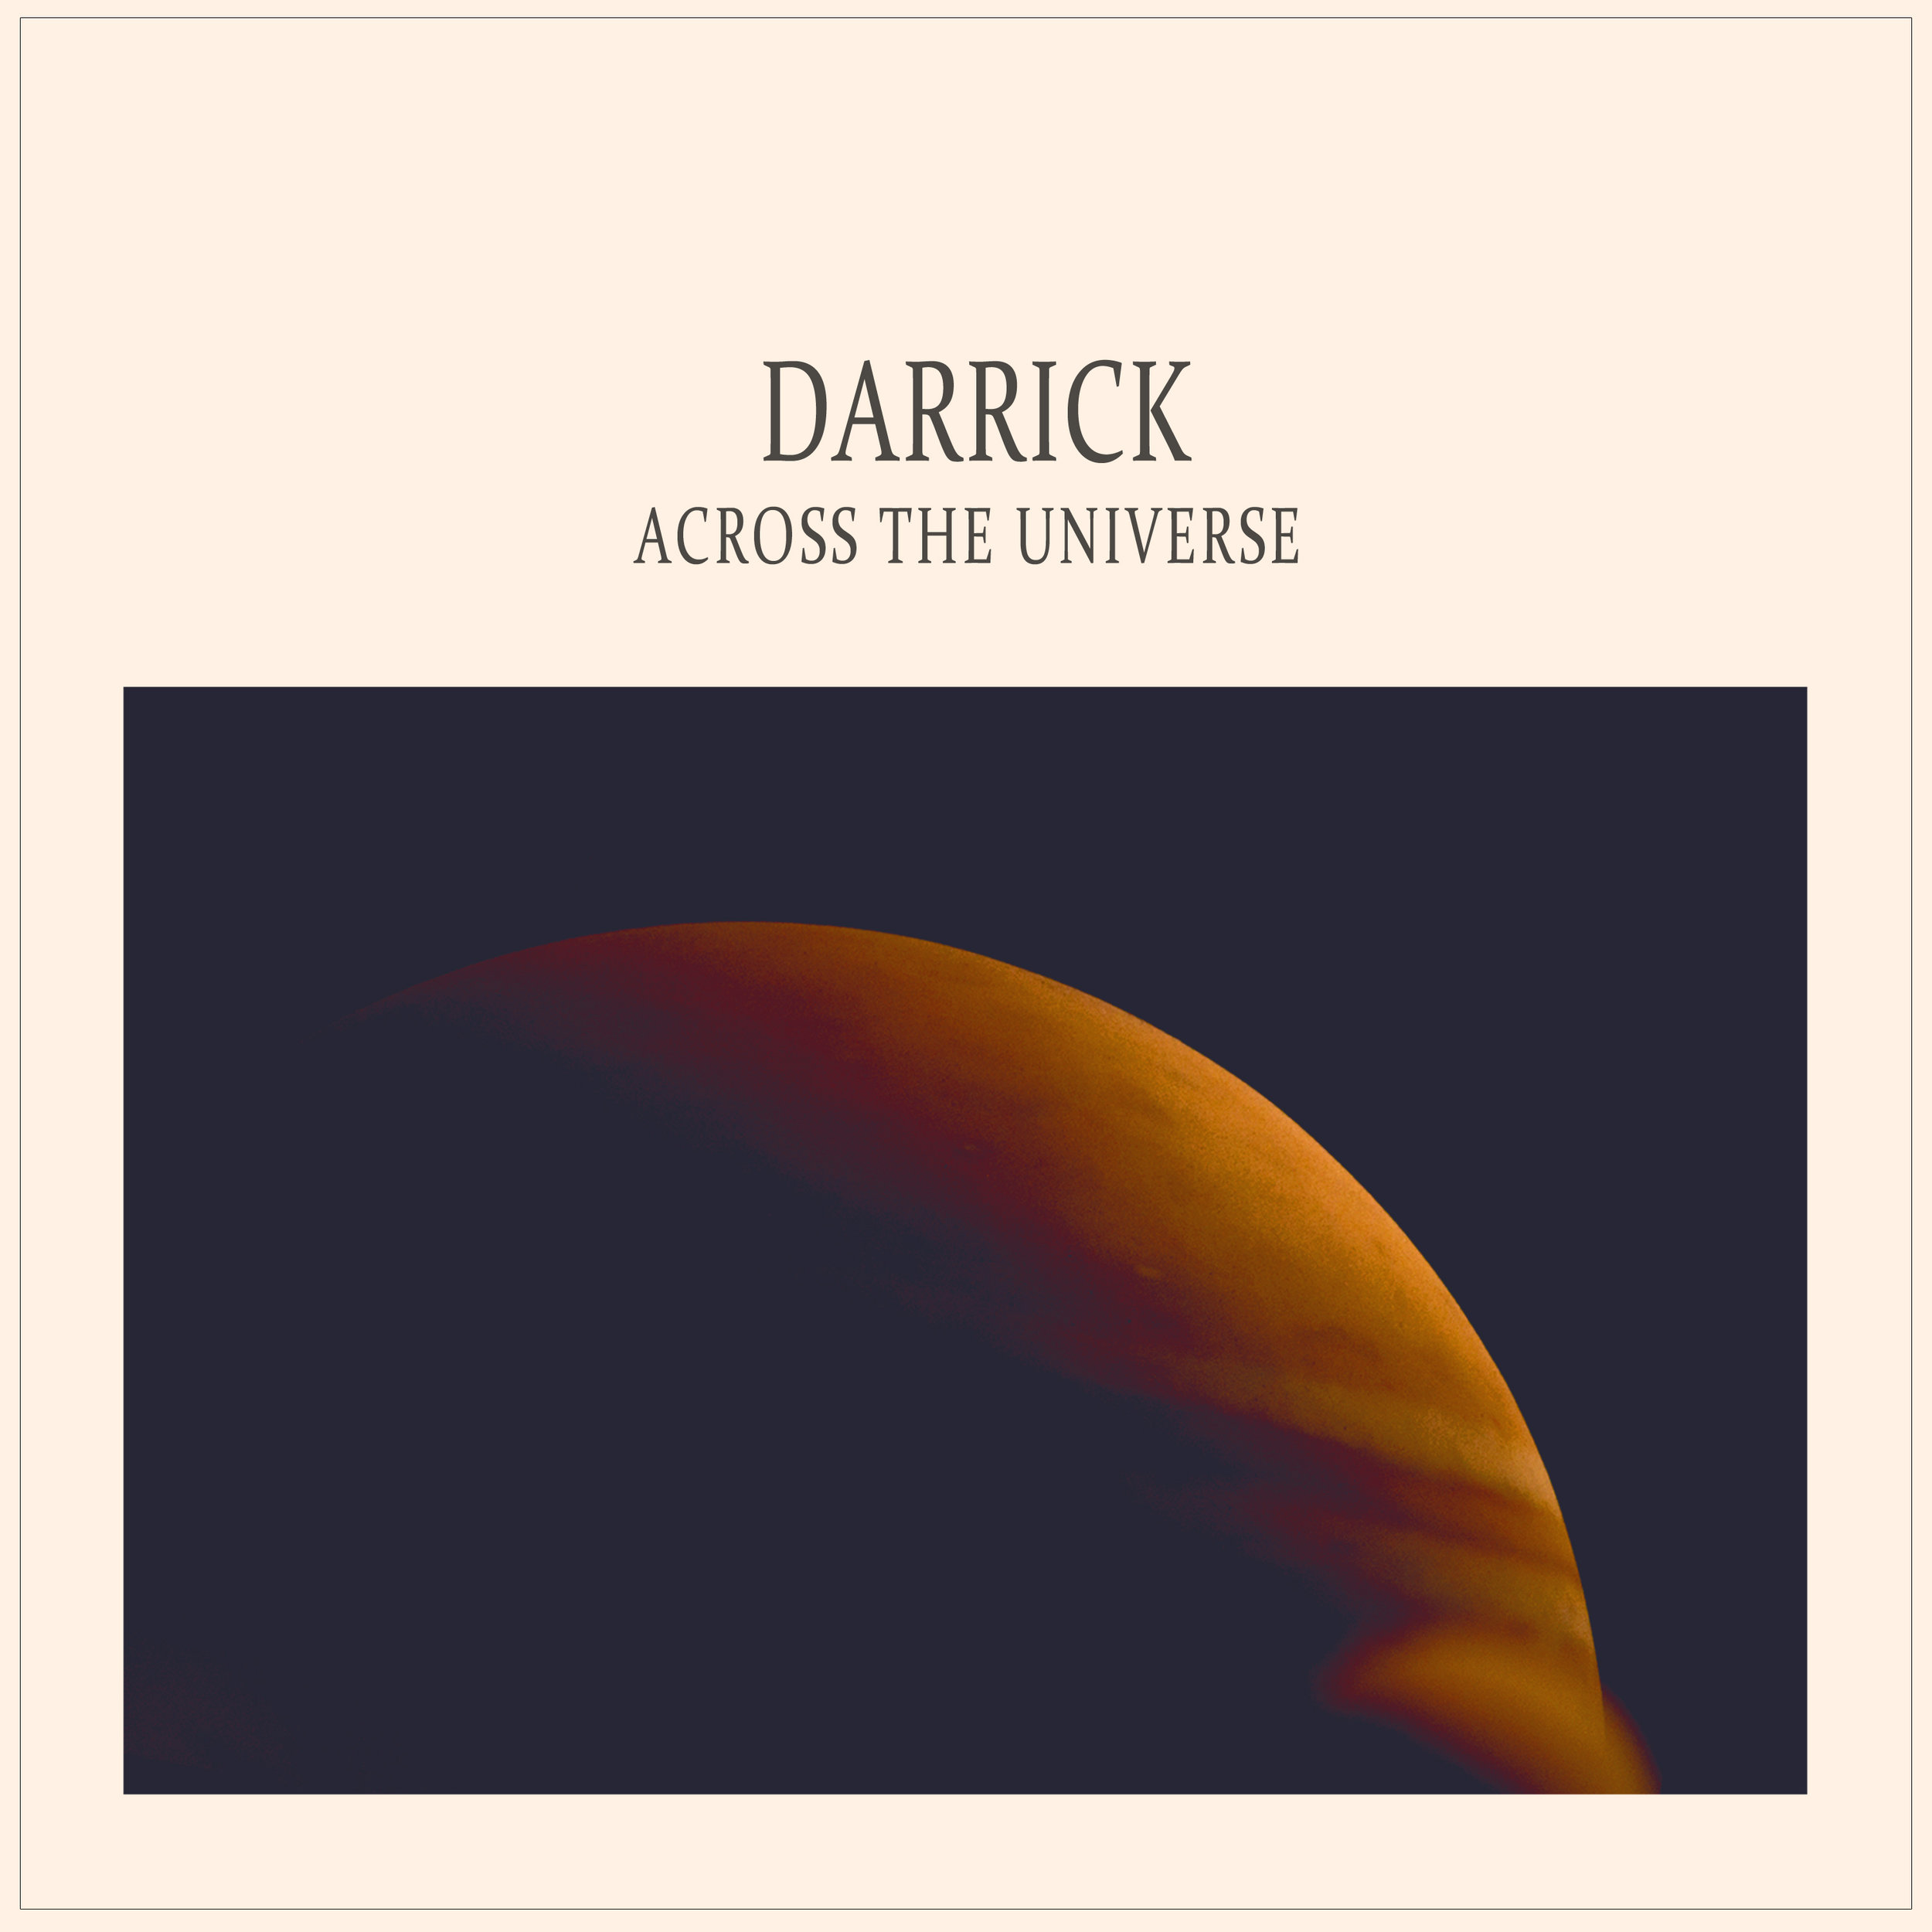 Darrick-across the universe itunes.JPG